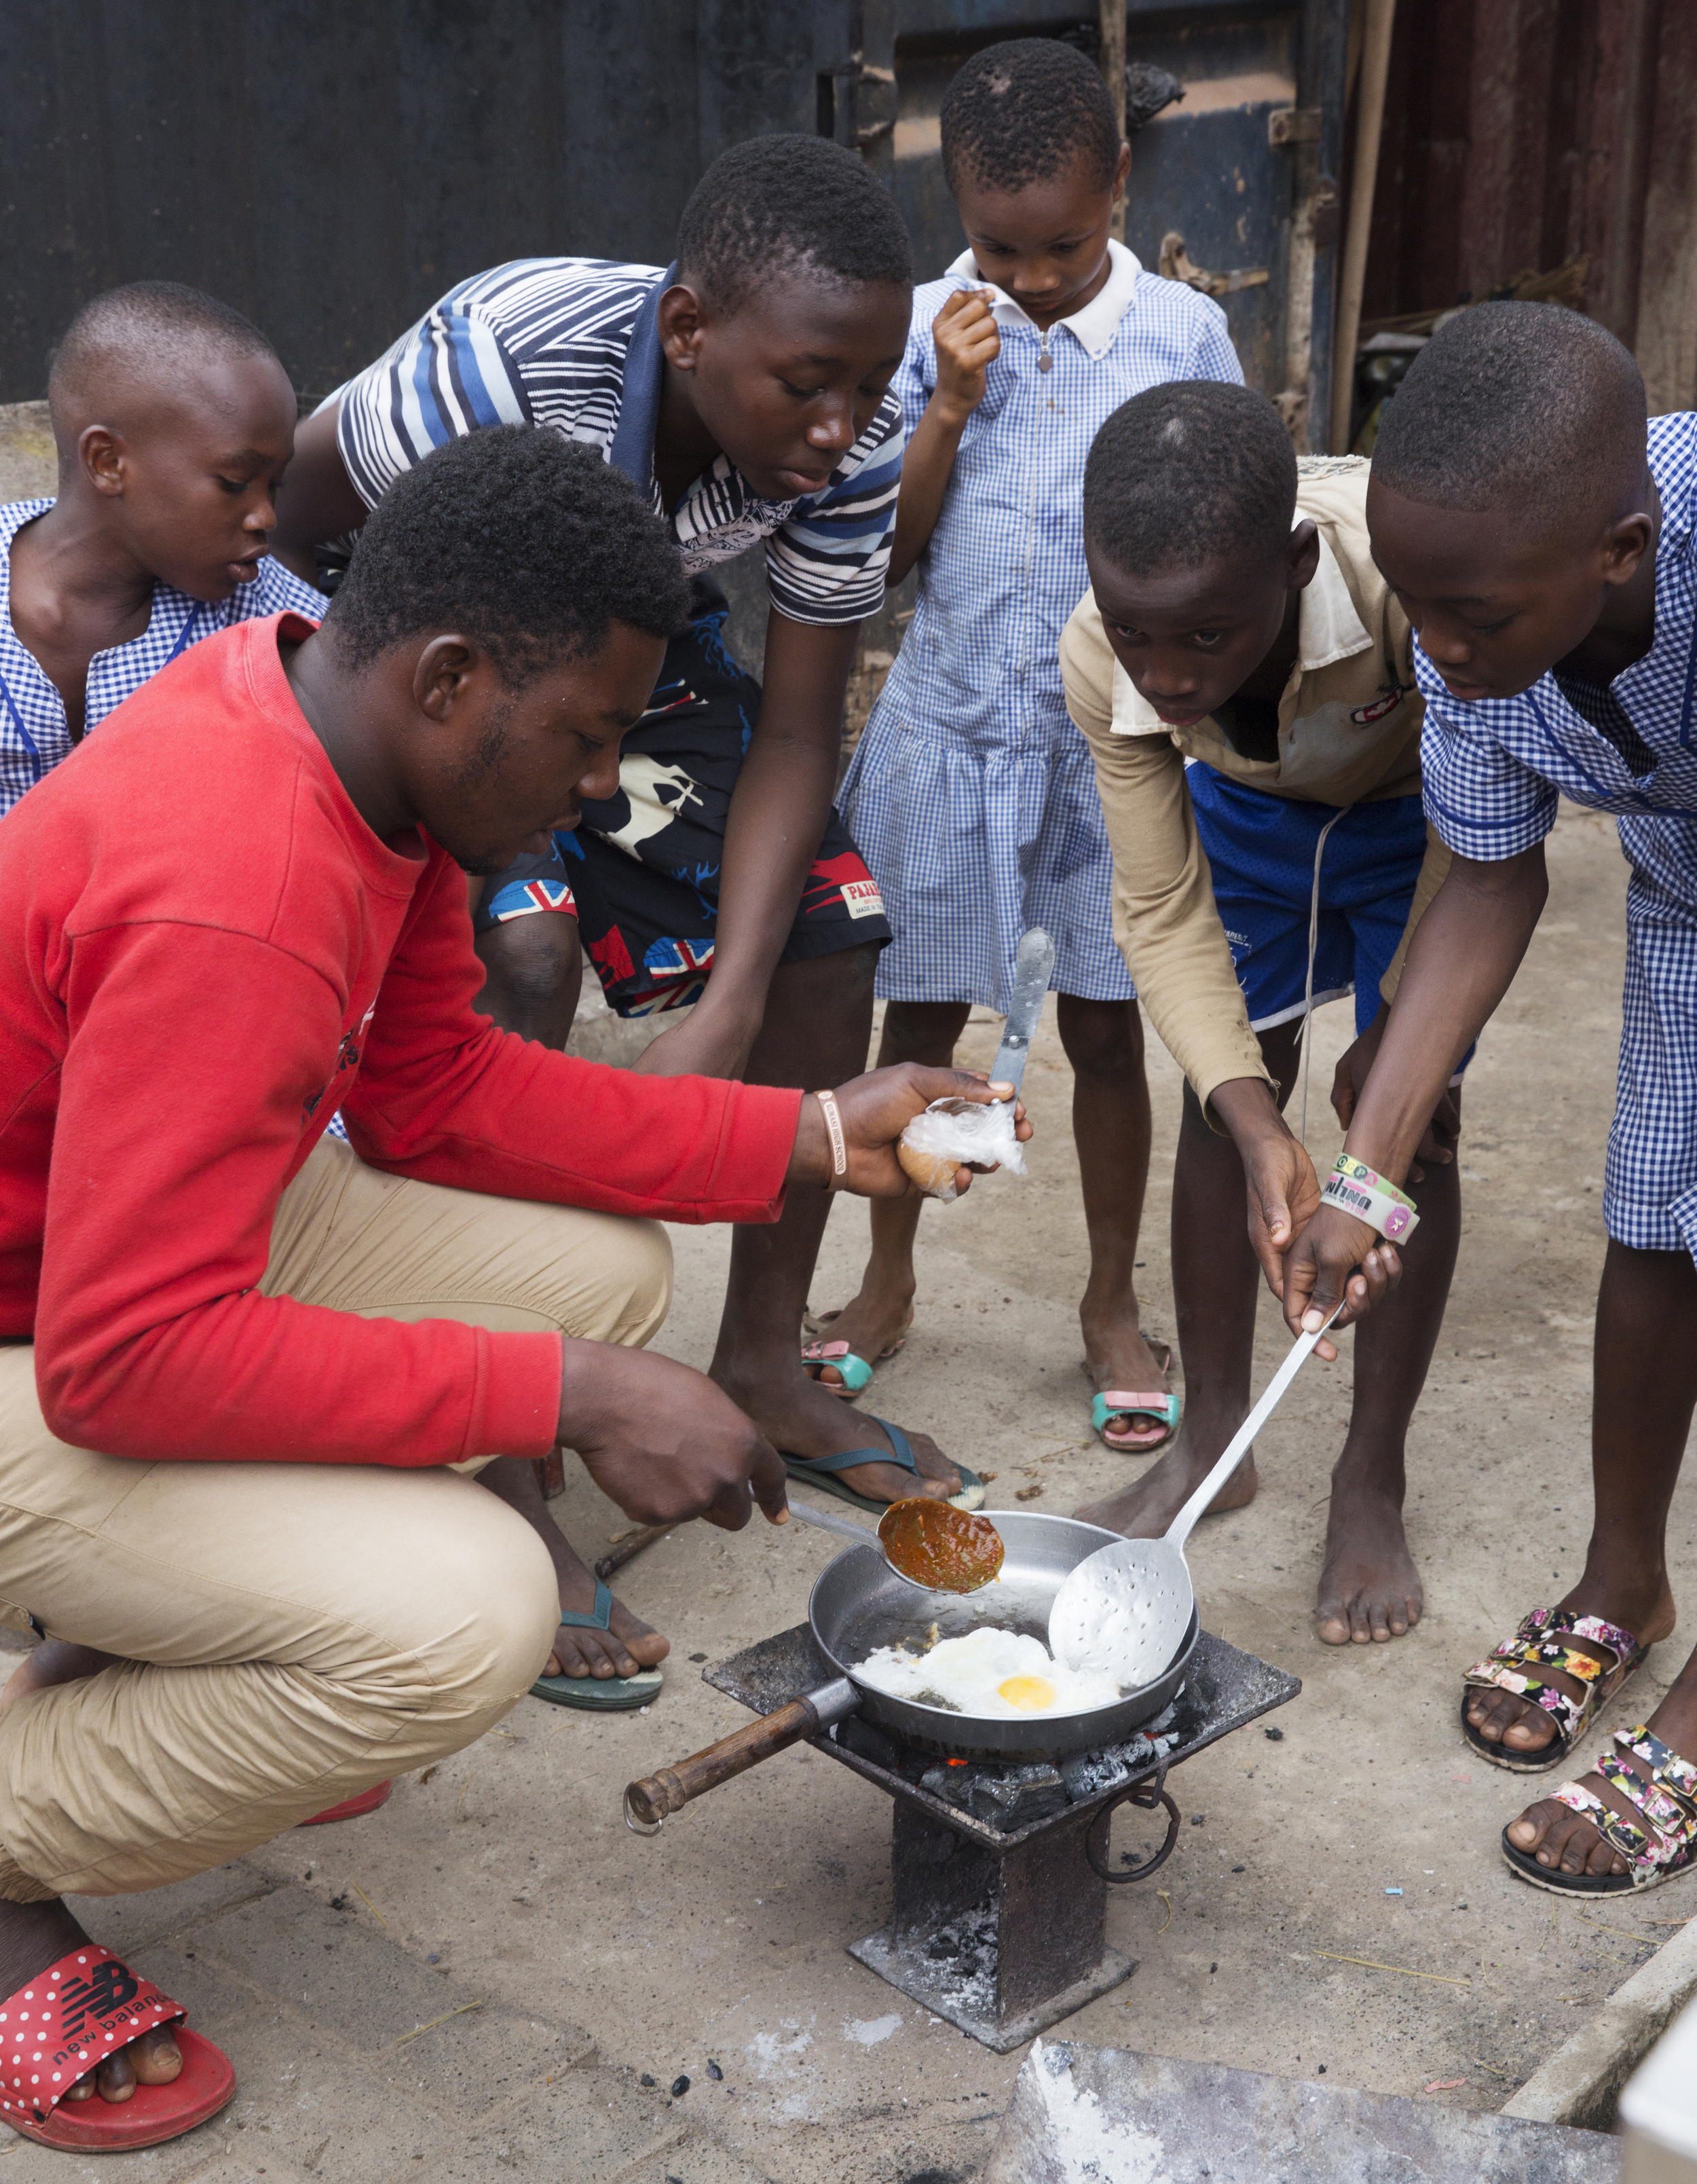 Sir Dennis helps the kids to fry the eggs that they will later chop up and add to their spaghetti.